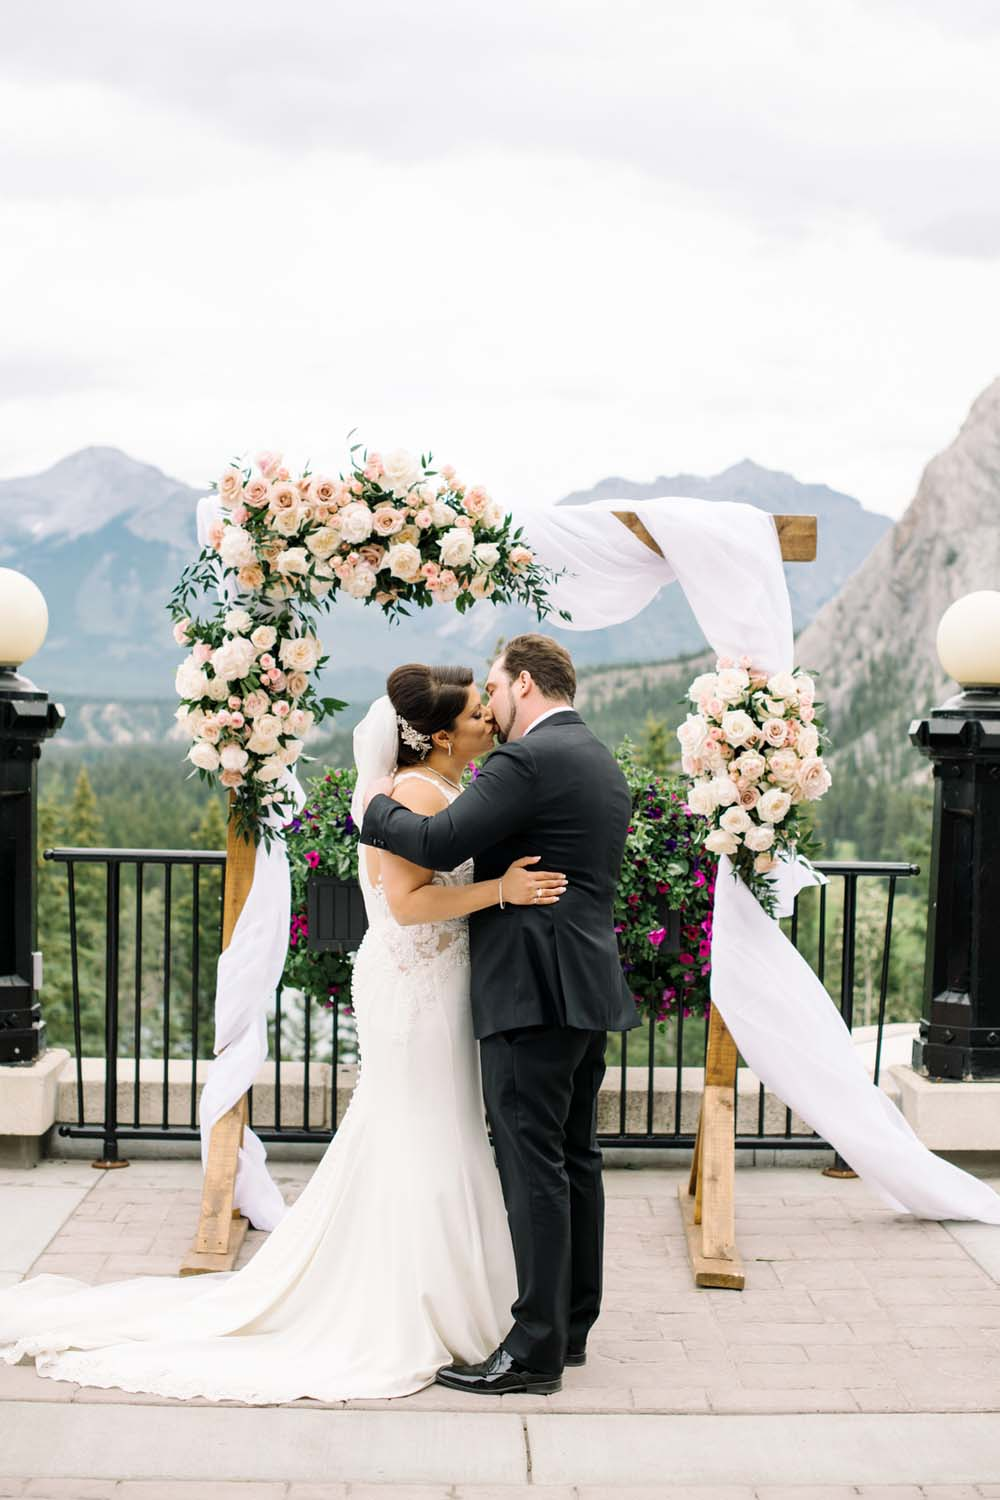 A Regal Fairytale Wedding in Banff, Alberta - Kiss